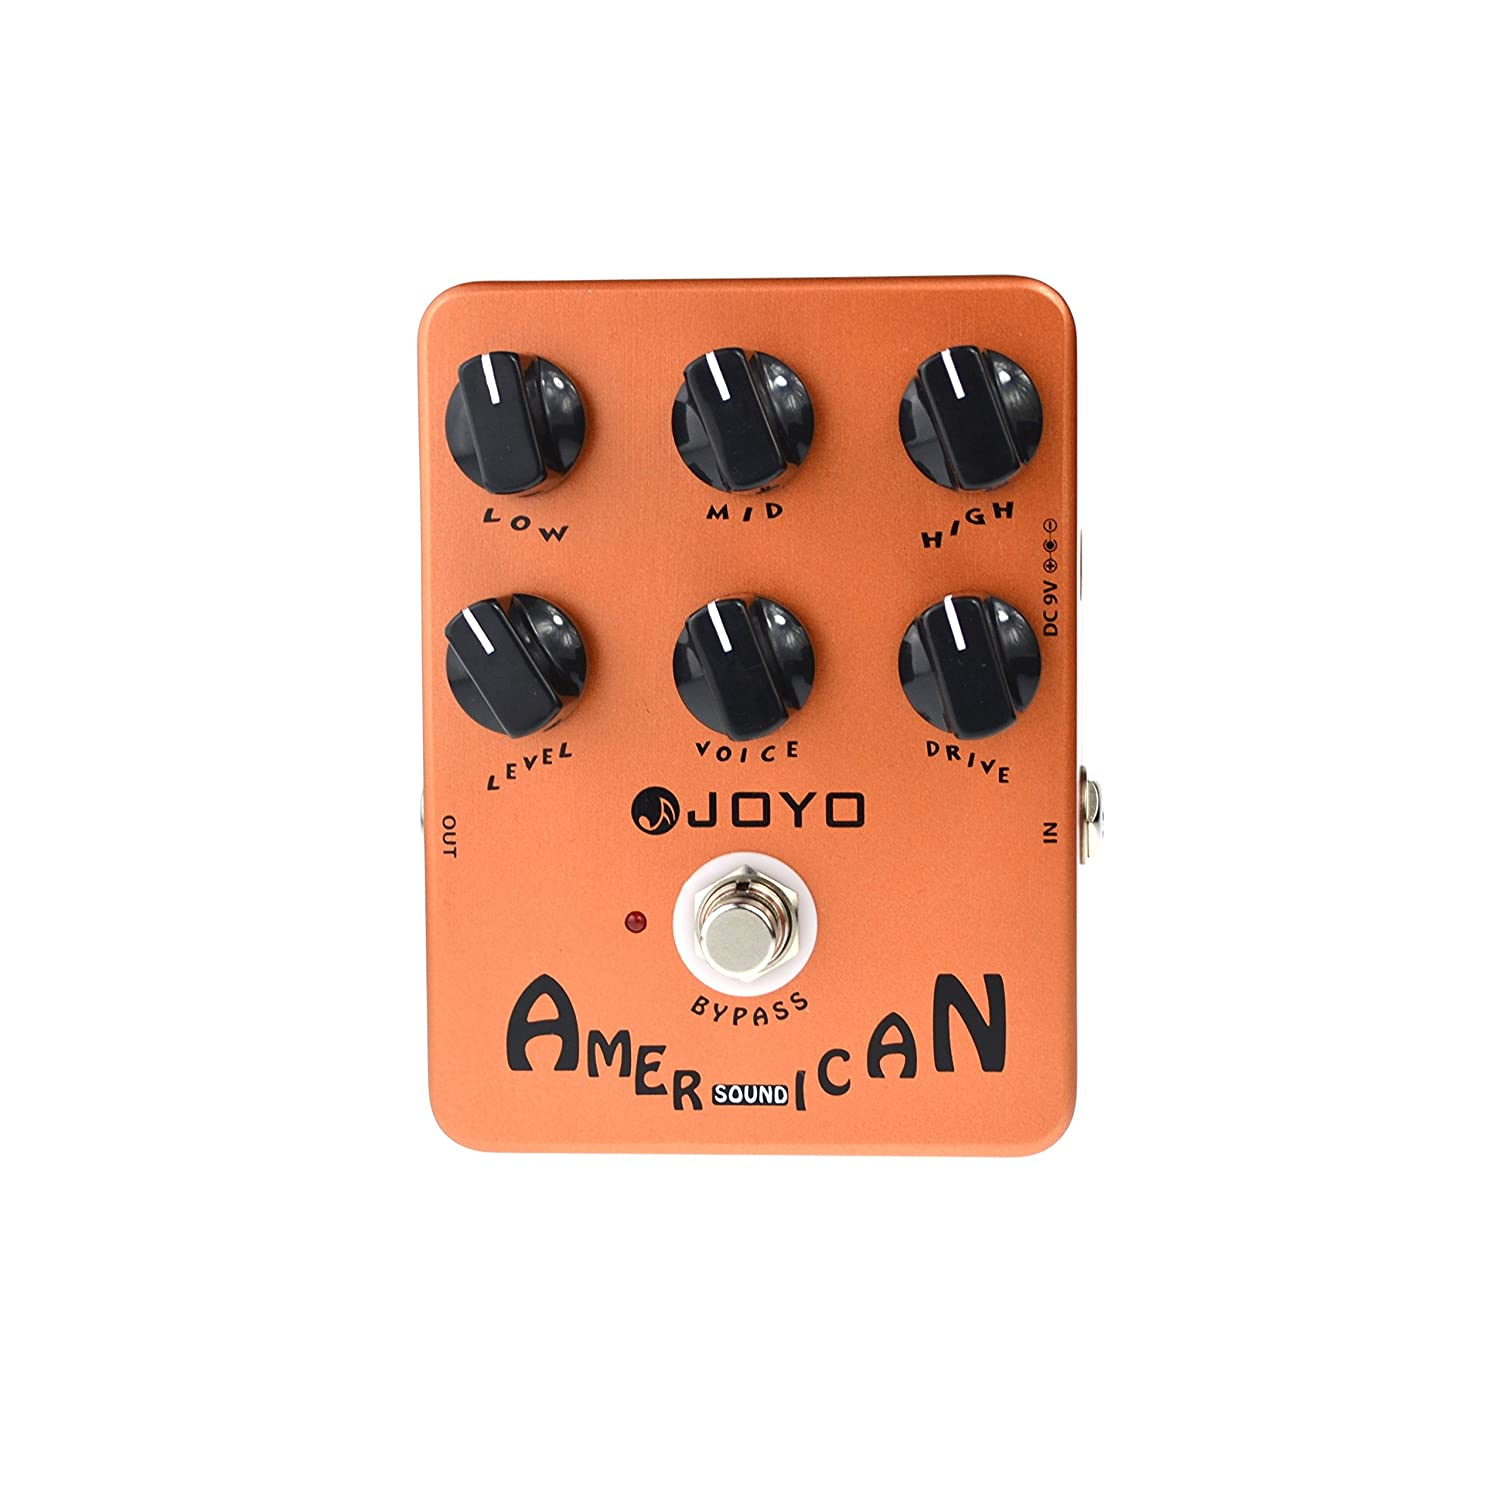 JOYO JF-14 American Sound Guitar Effect Pedal Overdrive DI Amplifier  Simulator (JF-14)